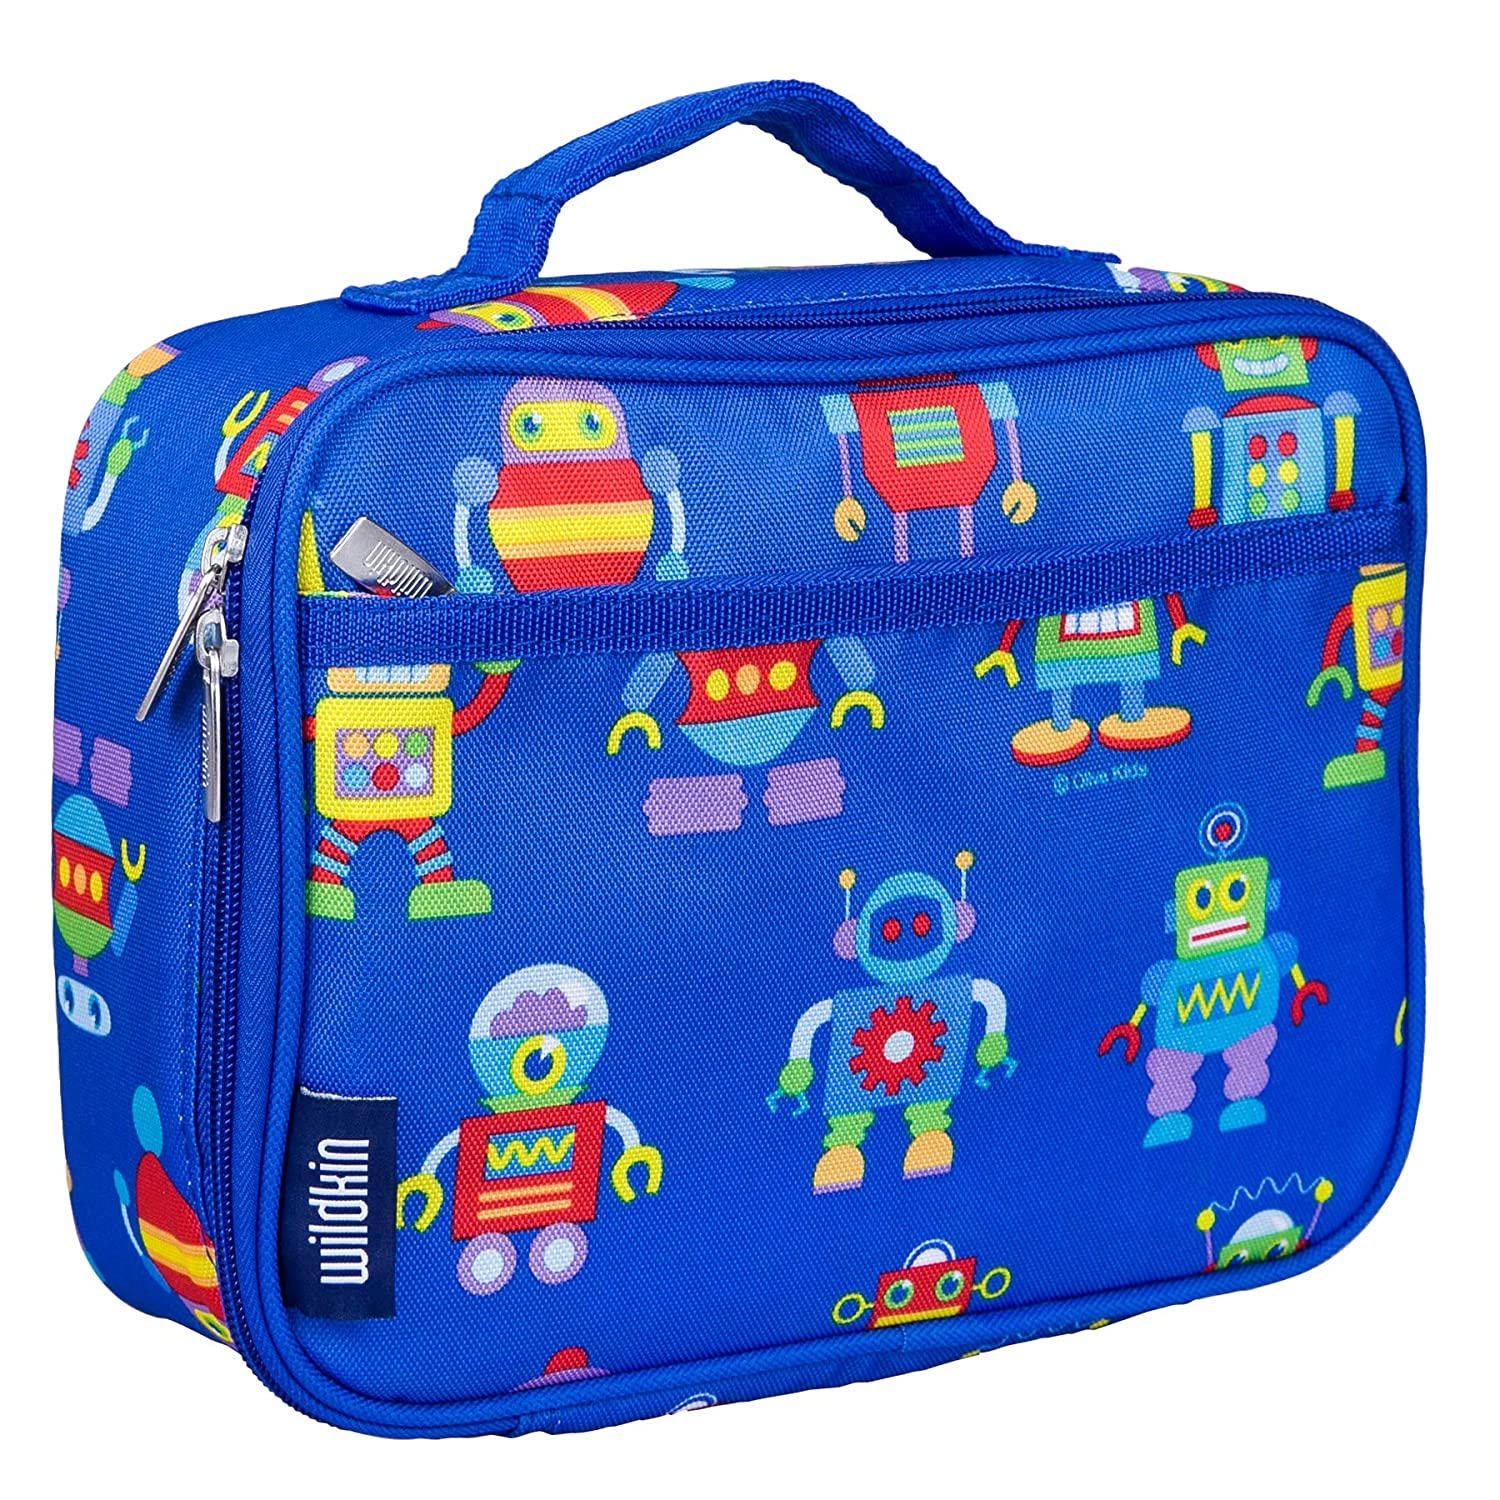 Wildkin Lunch Box, Insulated, Moisture Resistant, and Easy to Clean with Helpful Extras for Quick and Simple Organization, Perfect for Kids or On-The-Go Parents – Olive Kids Design – Robots